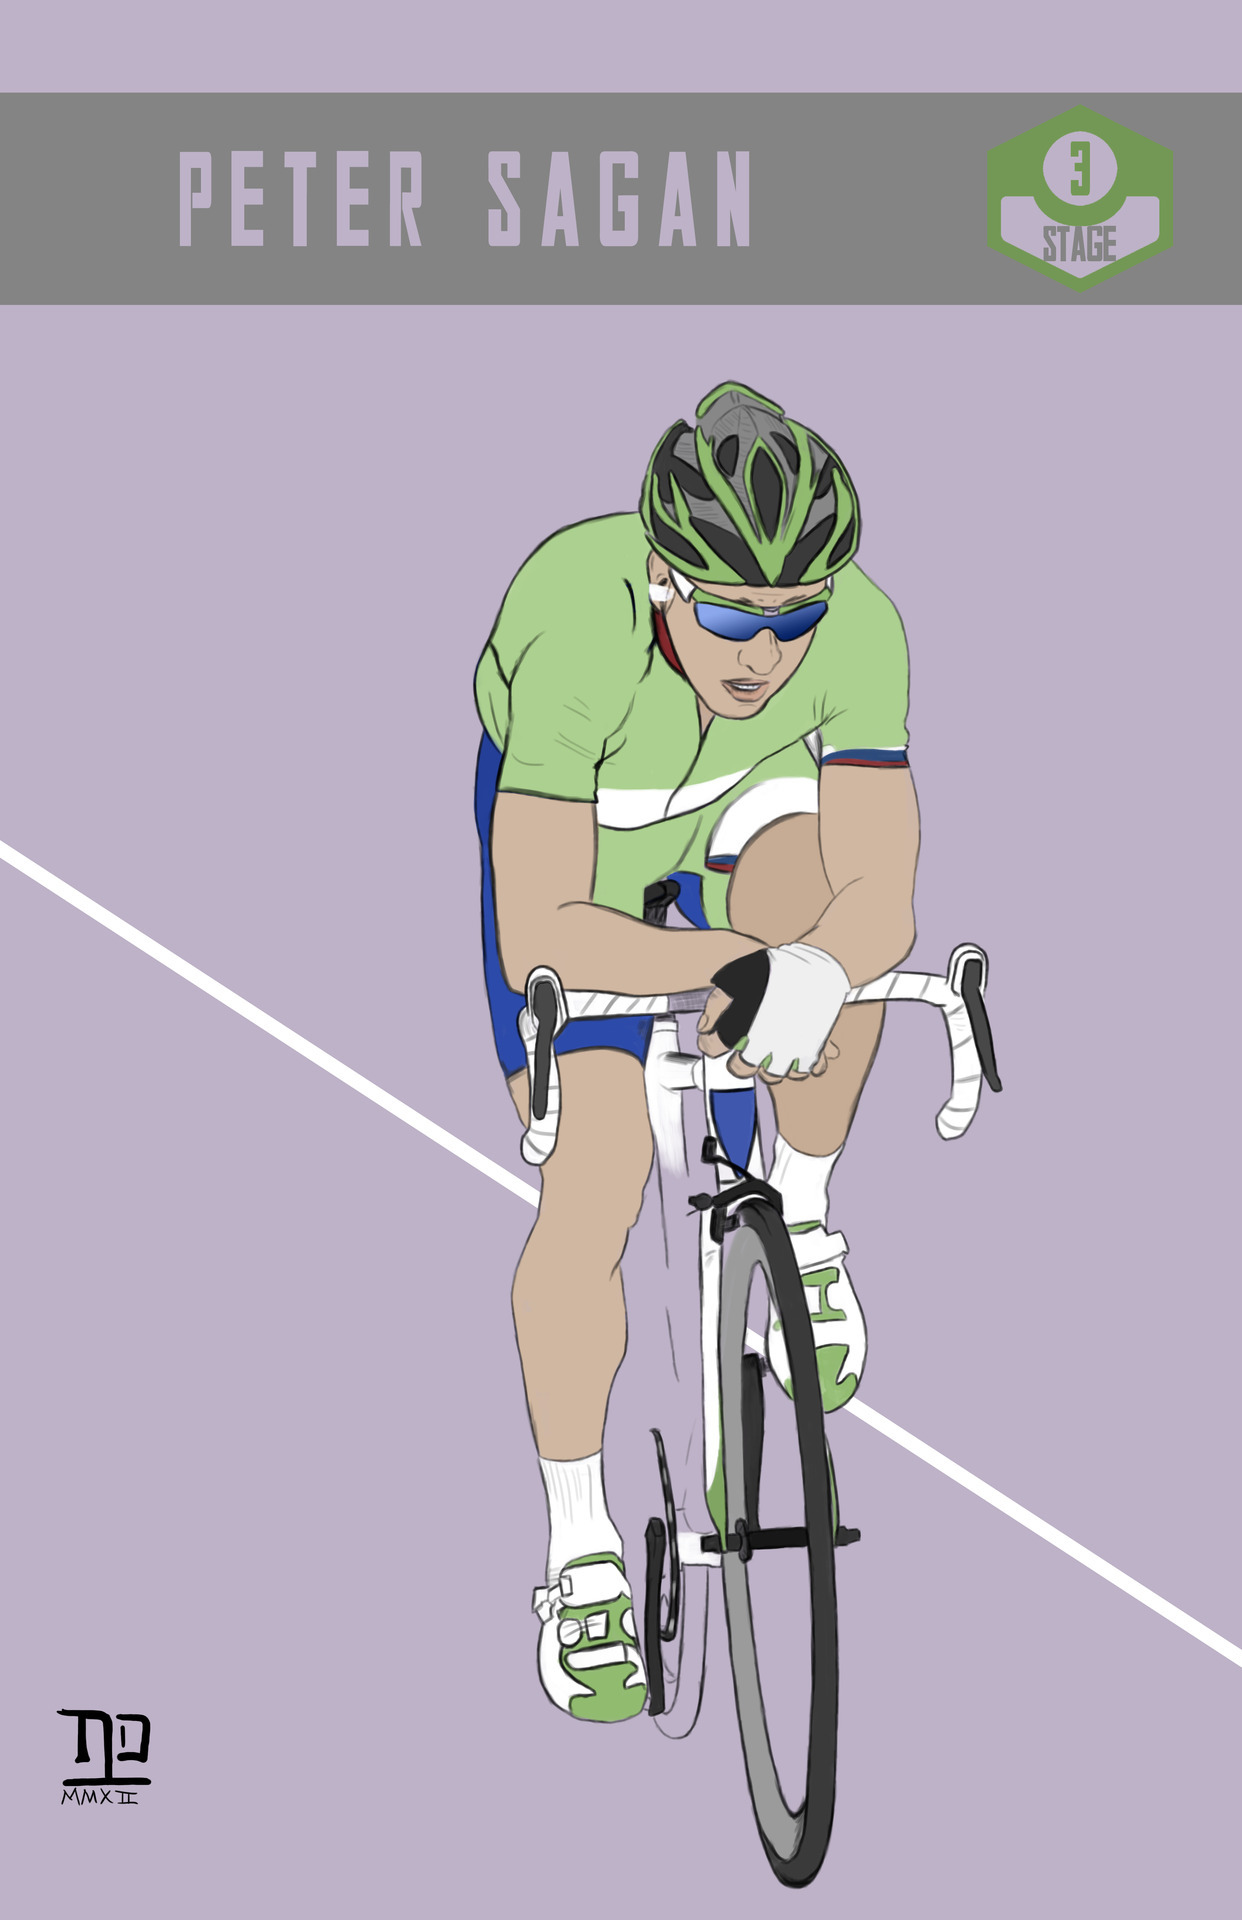 lastpolkadesign:  Tour de France: Stage 3 winner, Peter Sagan  ©nathan dallesasse